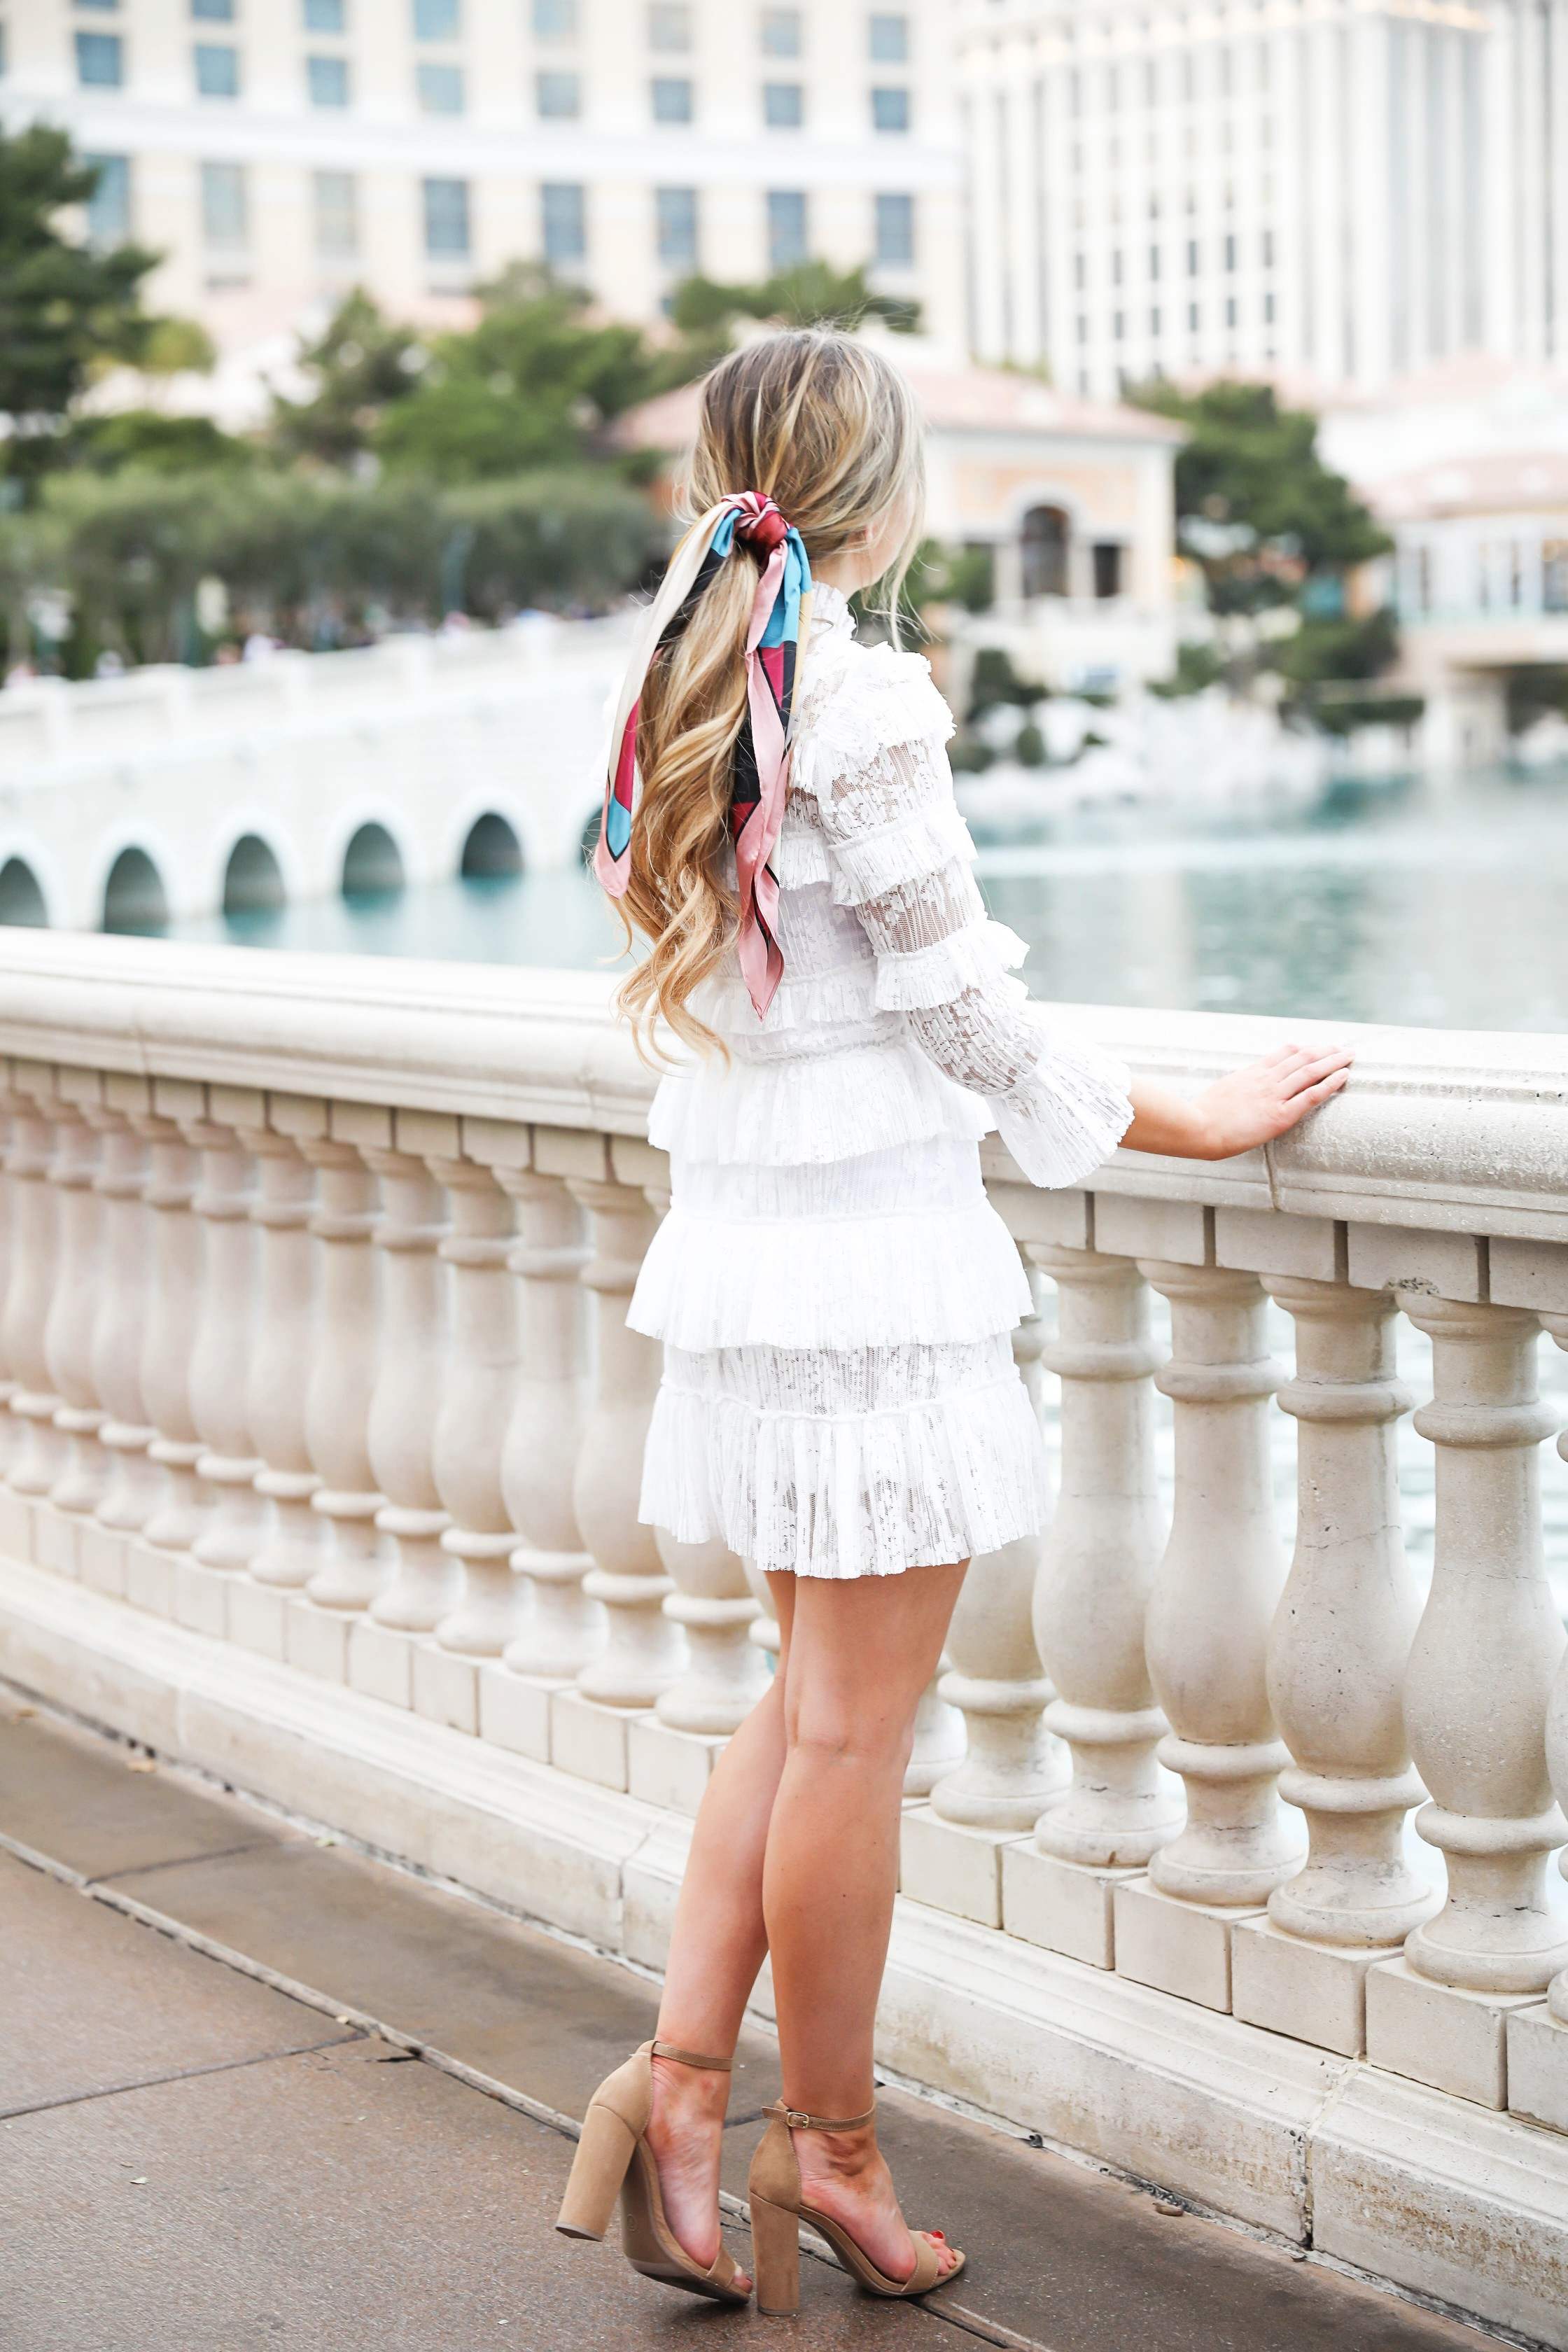 Bellagio fountains in Las Vegas! Wearing a white lace dress and scarf in my pony tail! Las Vegas style! Las vegas blogger! Details on daily dose of charm by lauren lindmark